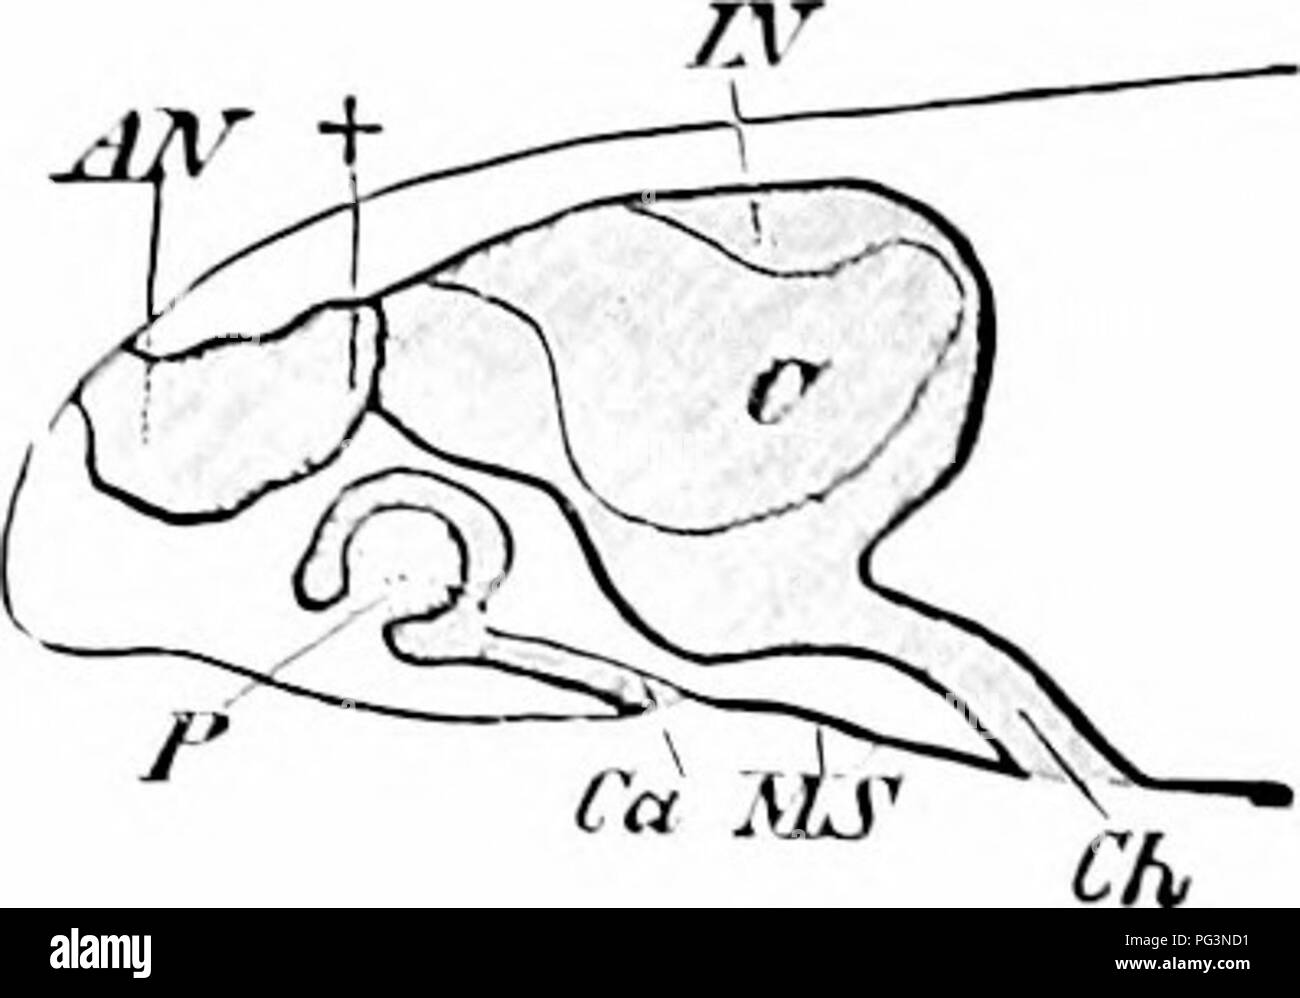 a manual of zoology zoology fig 52q fig fig 520 section of KCA University section of olfactory cpilliclium of a lisli bdoiic from o ilcrtwig after blaue c epitlielium k olfactory buds ner es fig c o